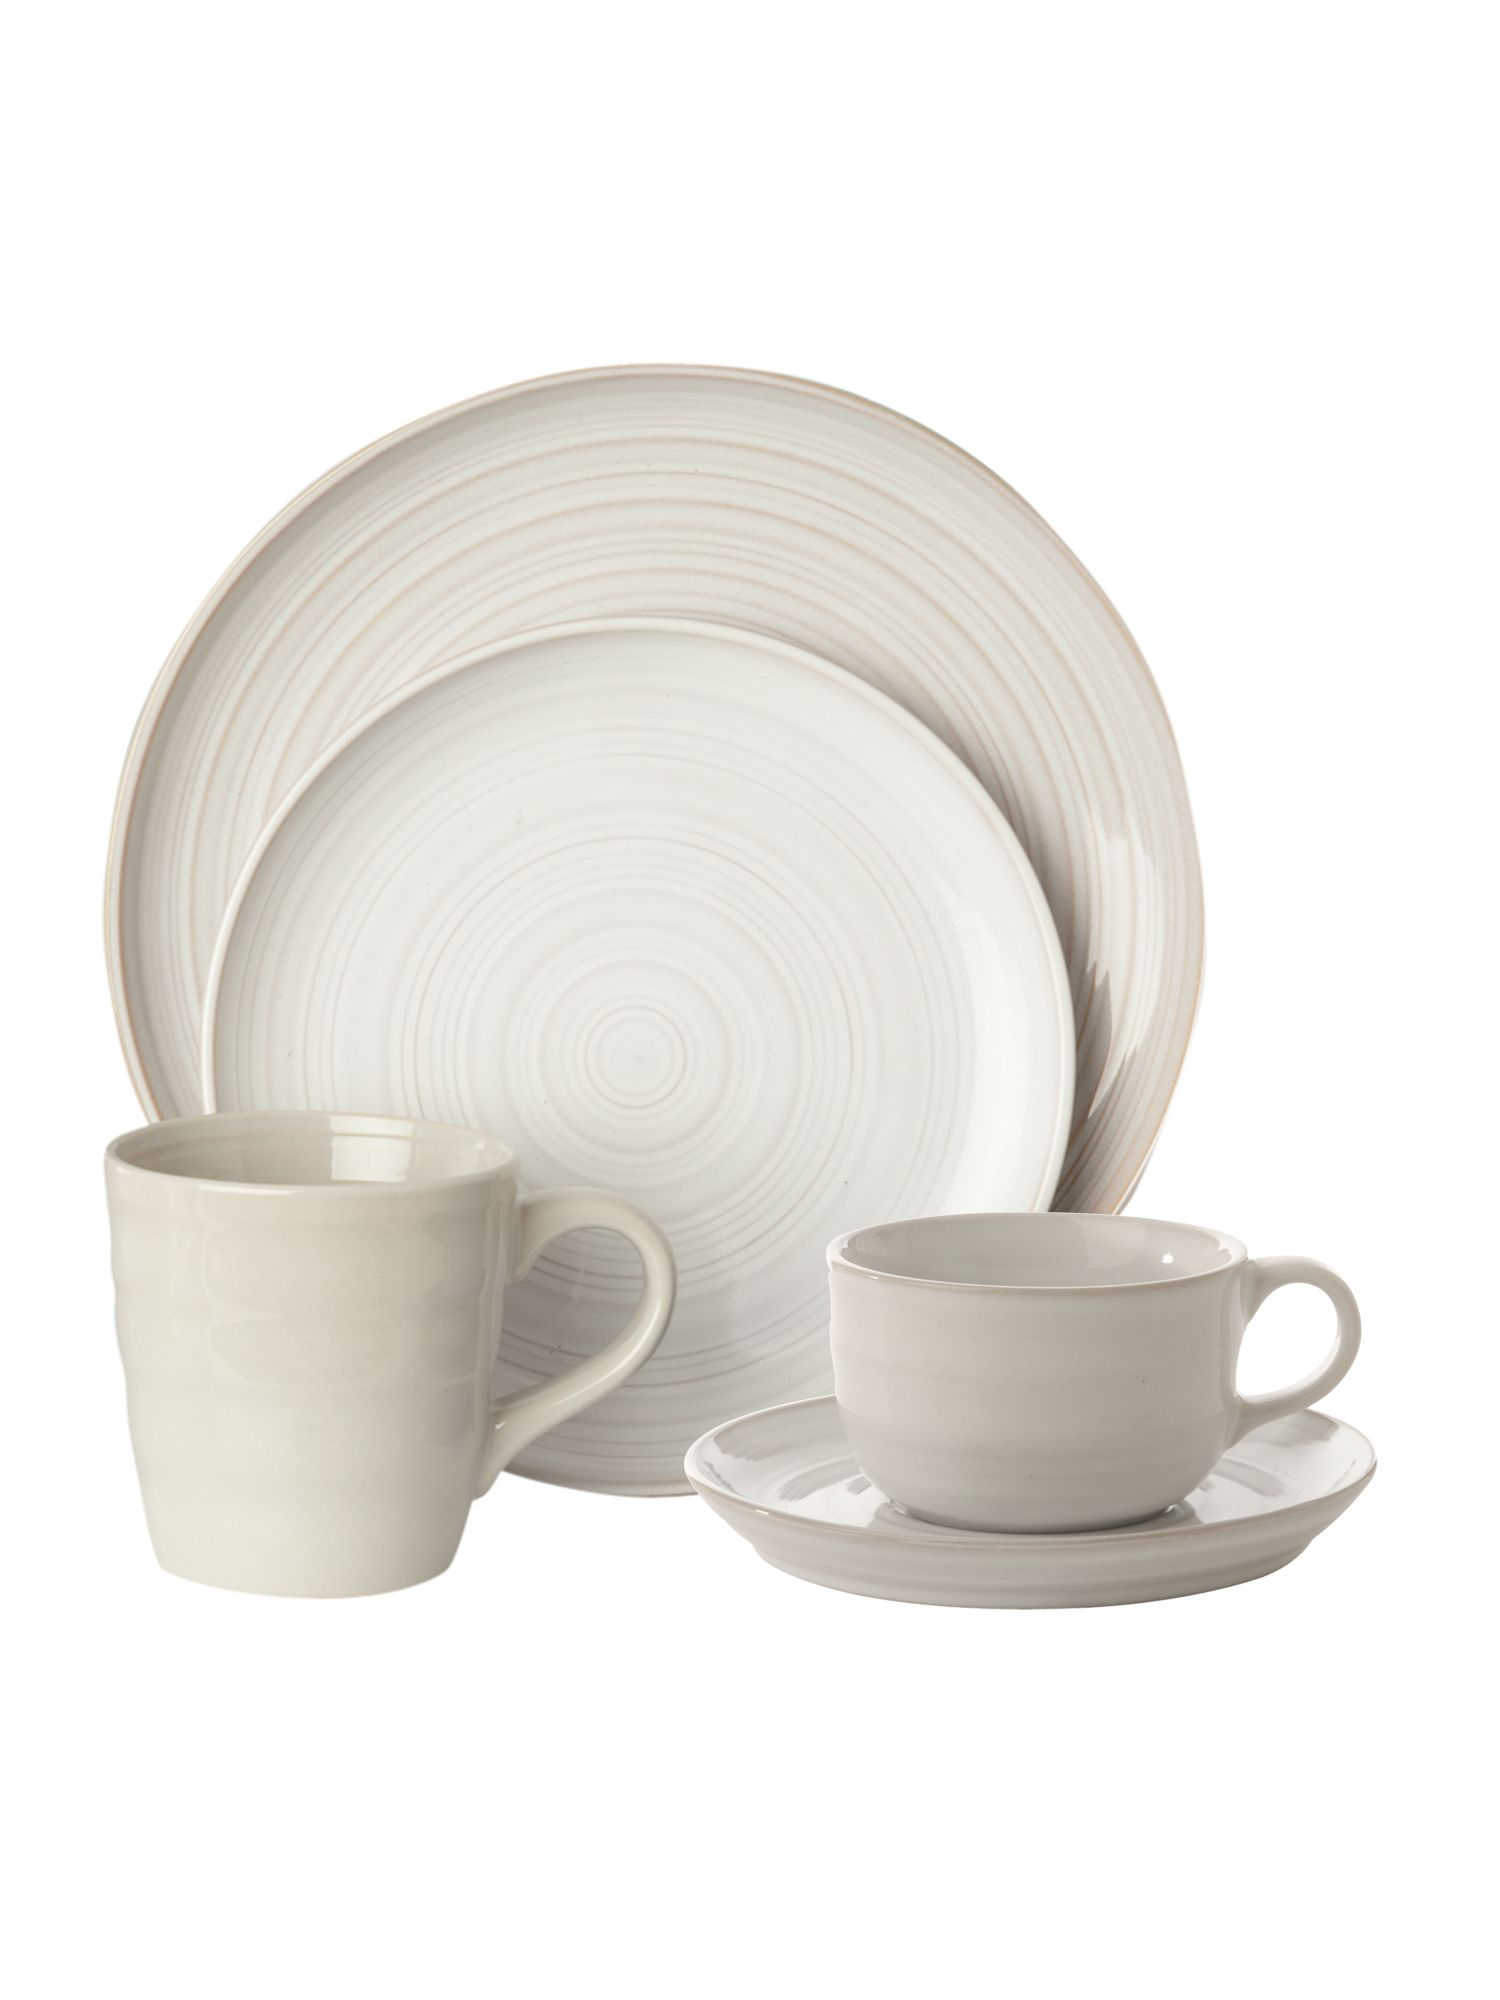 sc 1 st  House of Fraser & Linea Echo Dinnerware - House of Fraser